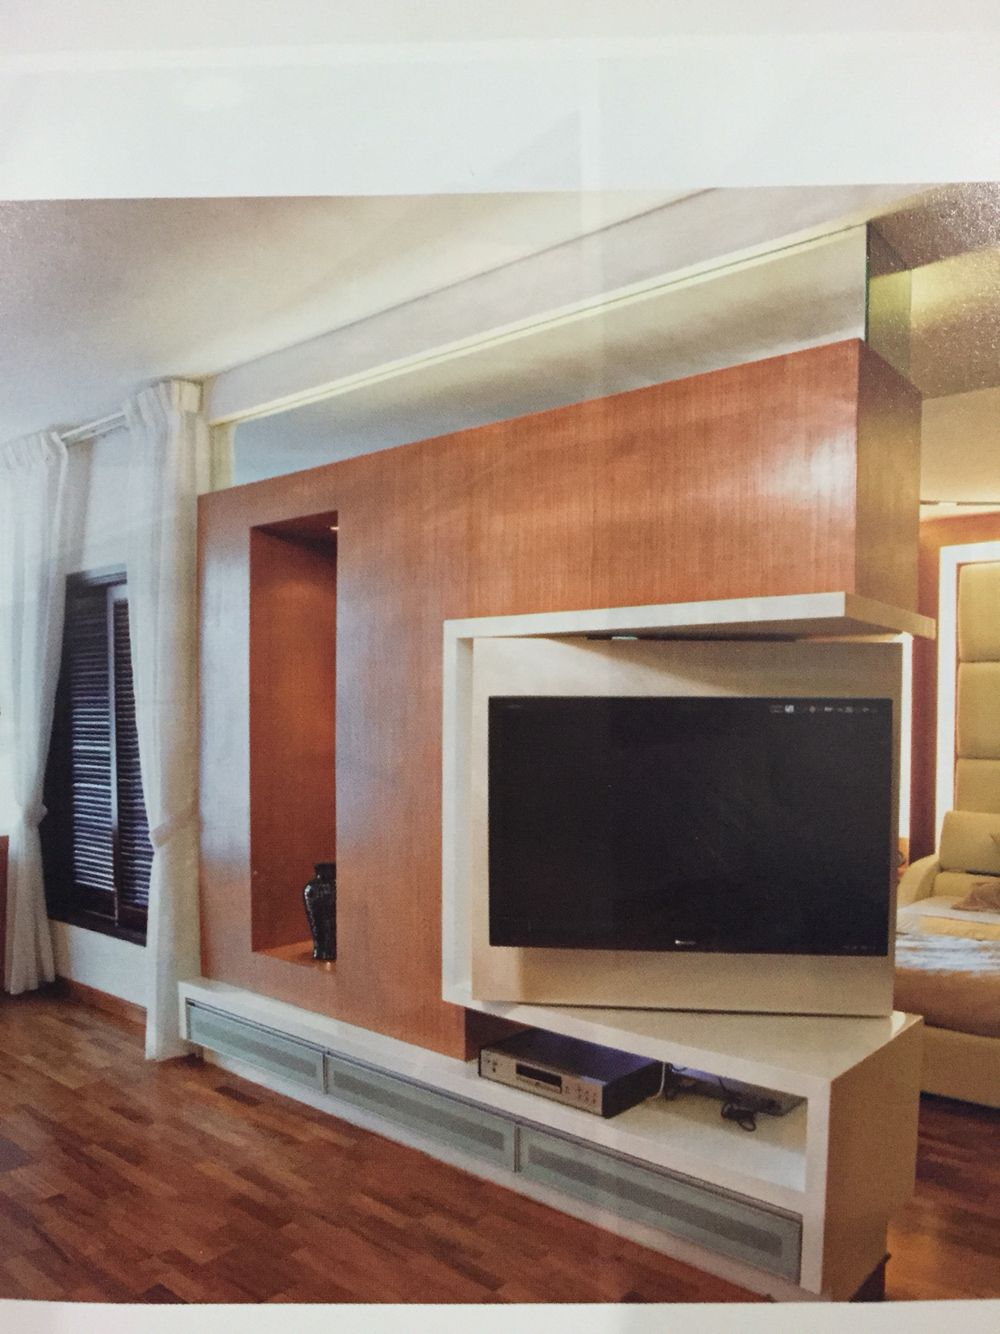 Tv Unit In Living Room: Modern Tv Wall Units, Tv Unit Design